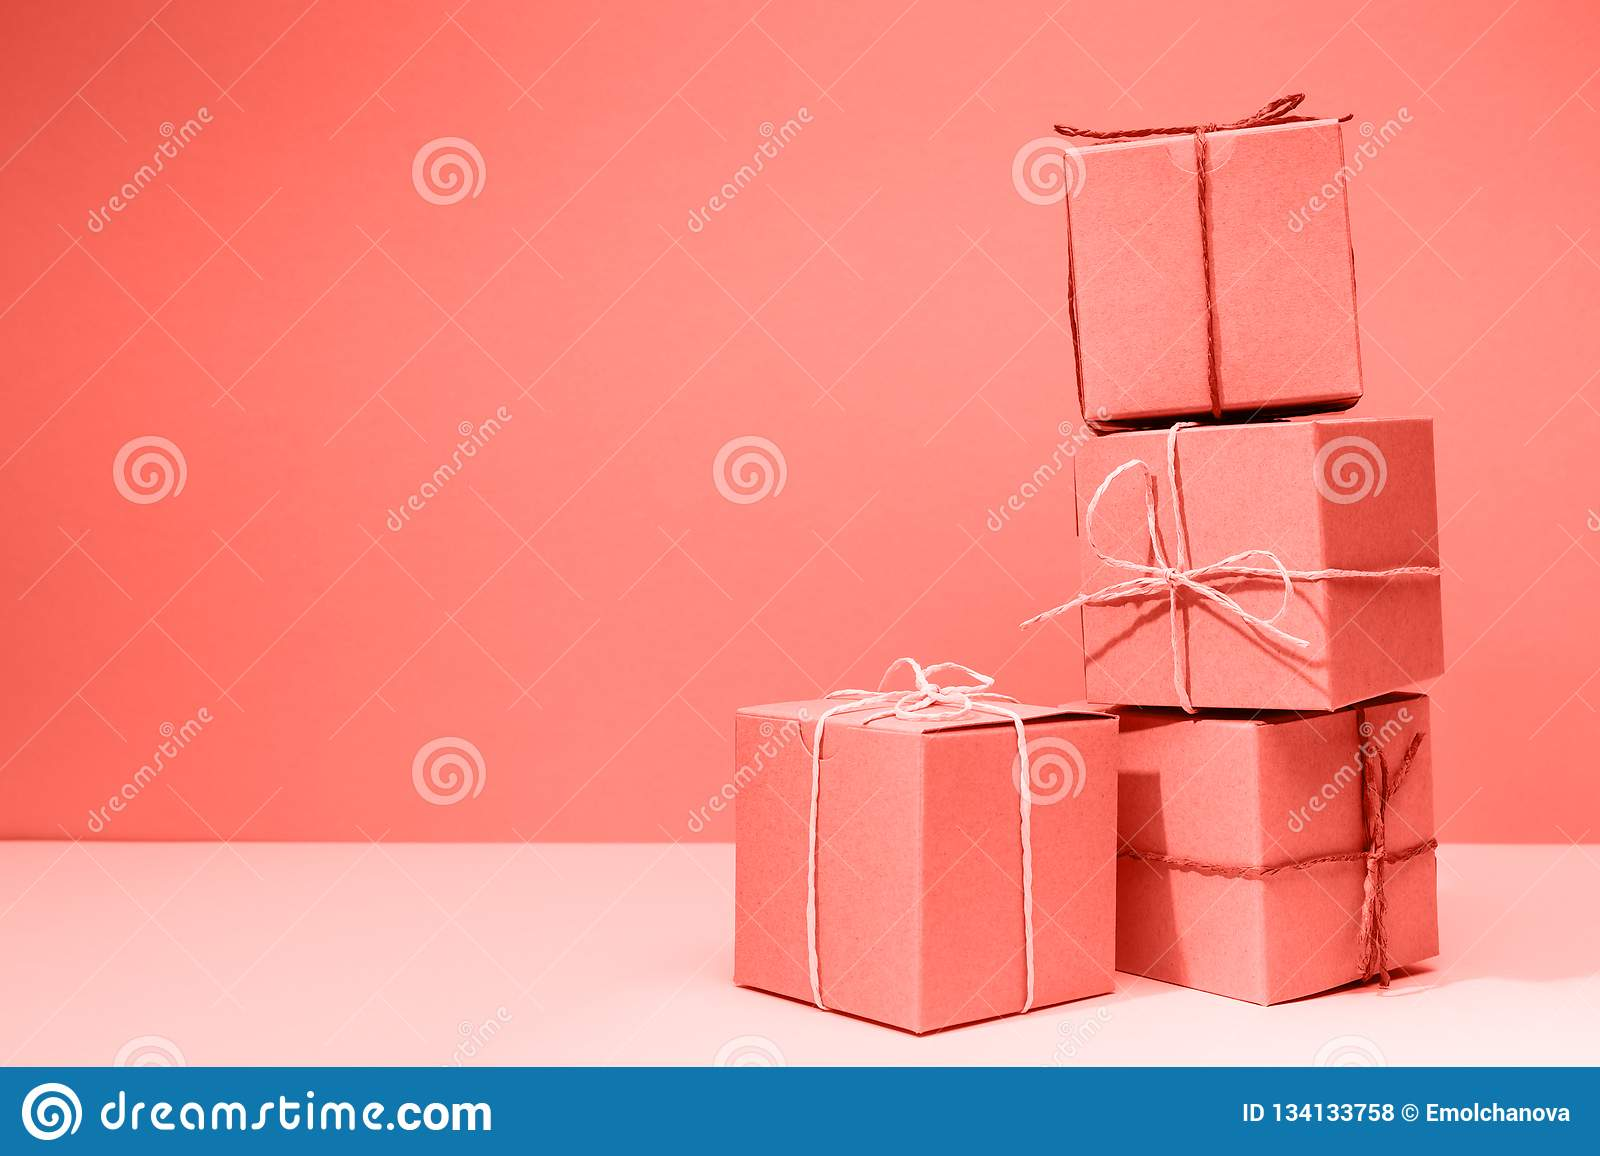 Craft Cardboard Gift Boxes On The Solid Pink Background Holiday And